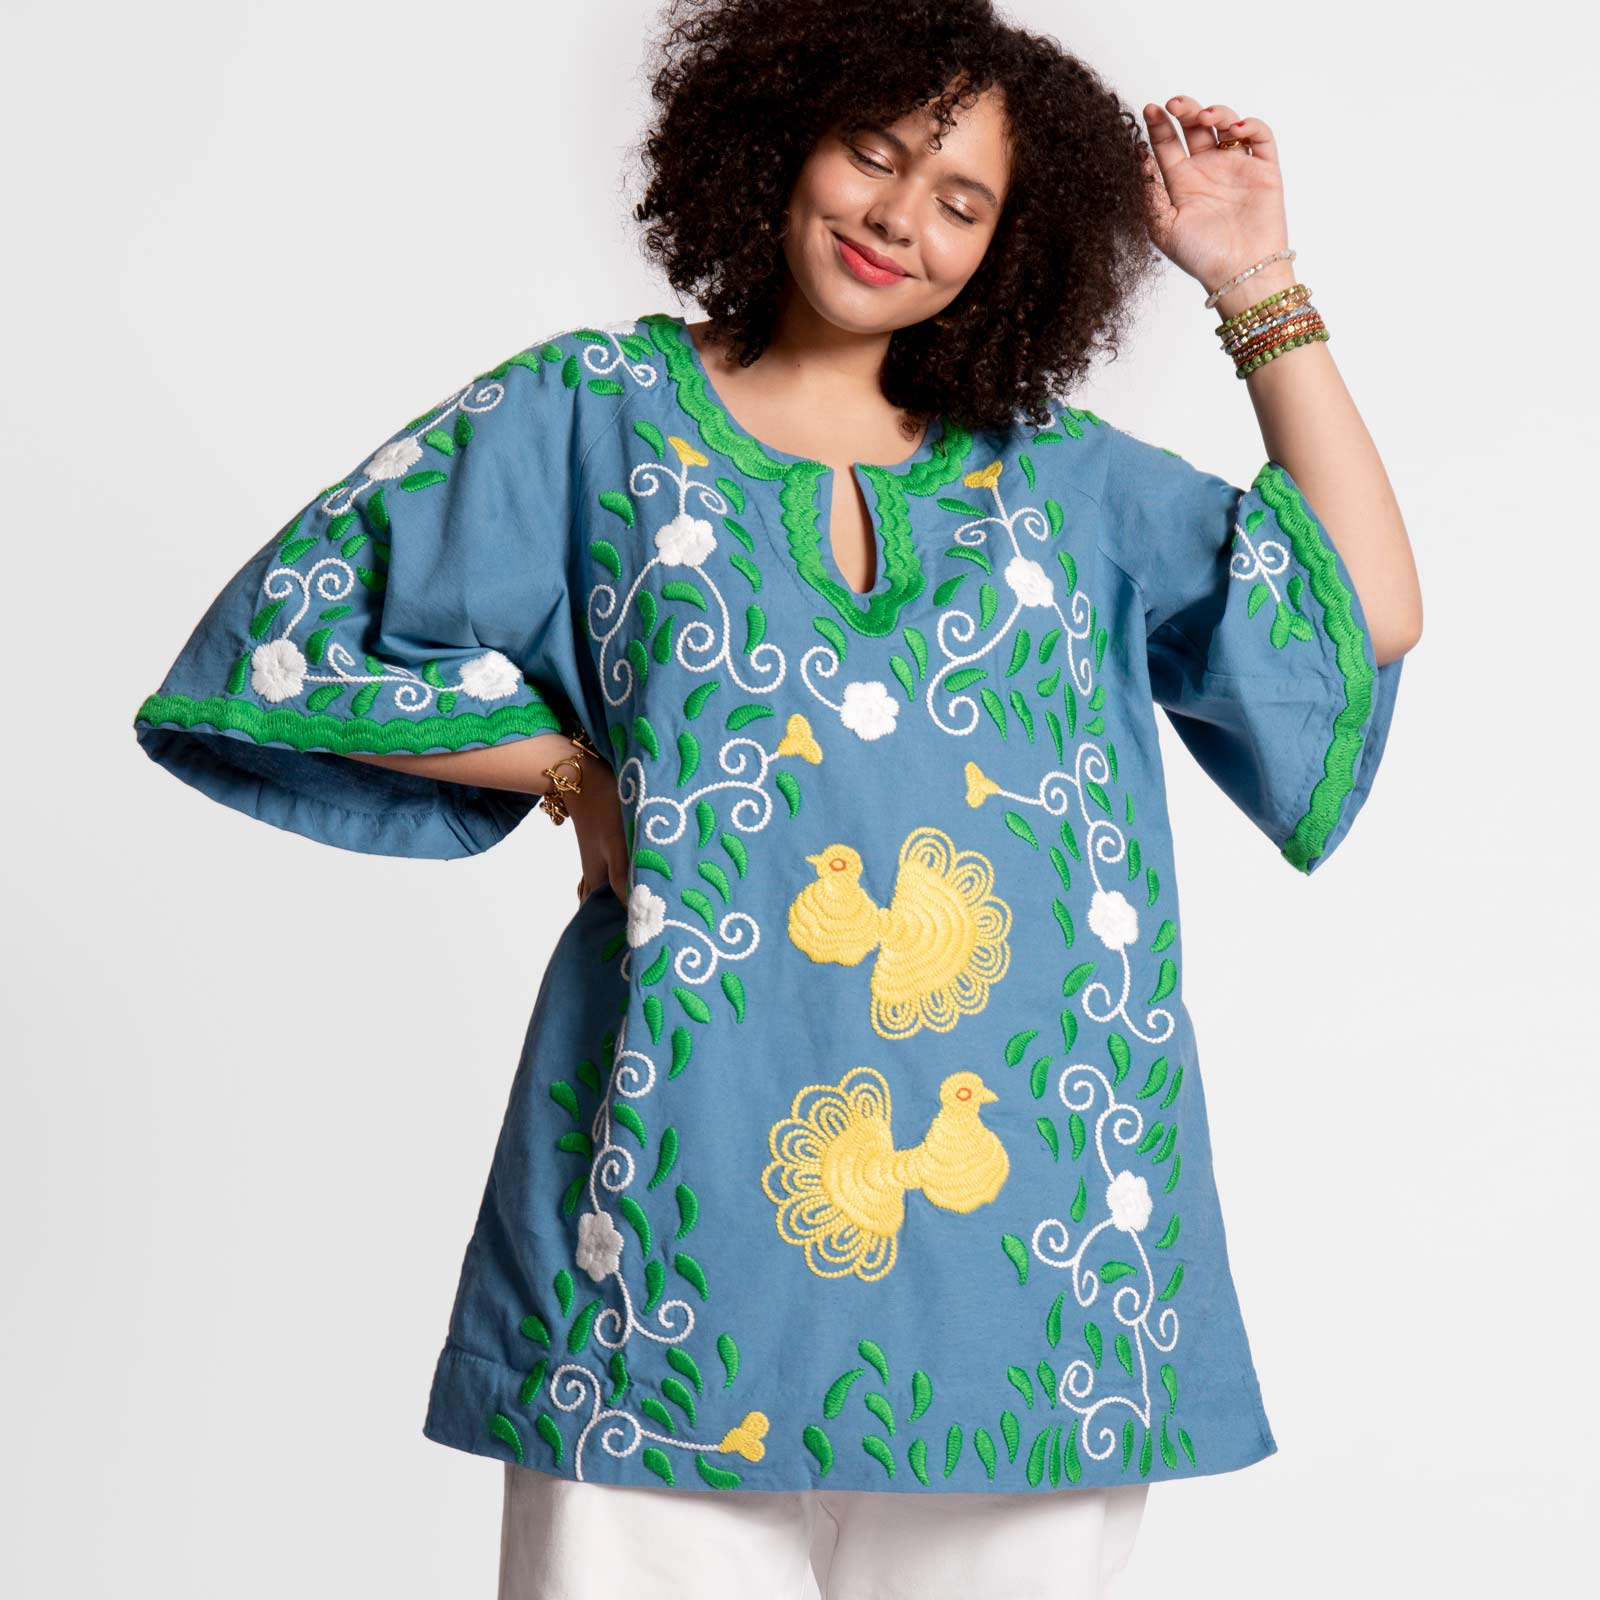 Peacock Tunic Light Blue Green Yellow